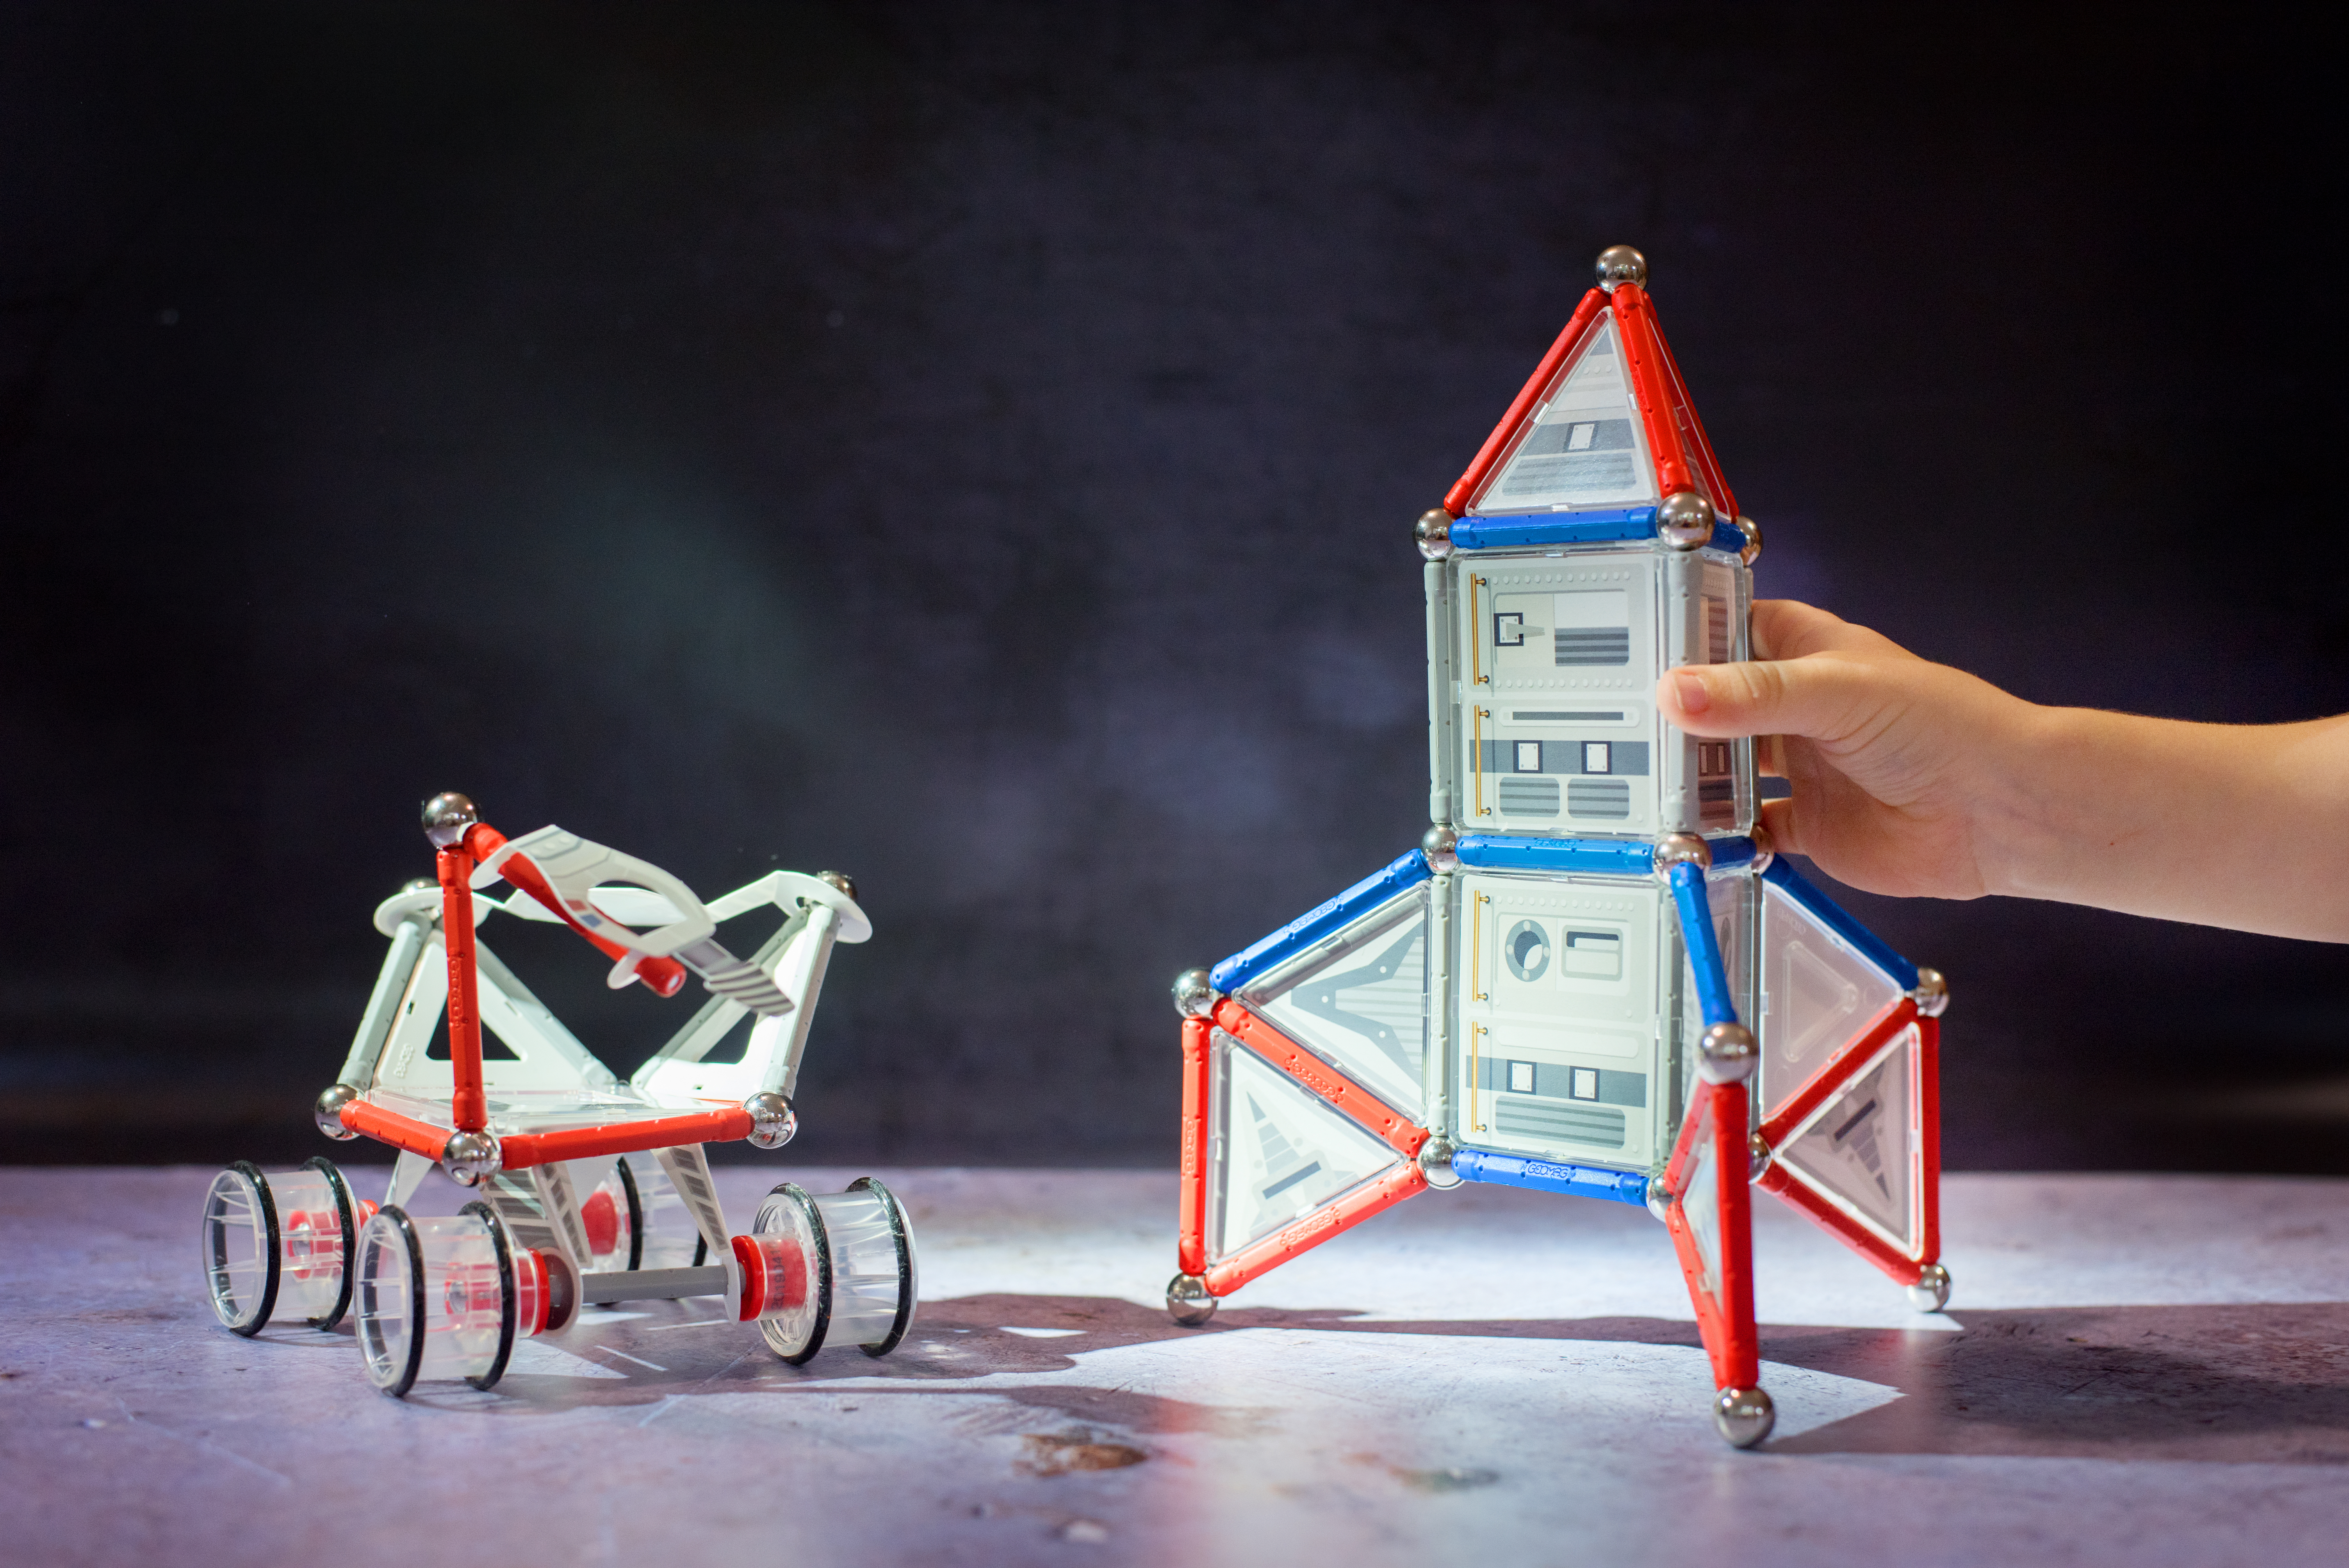 GEOMAG SPECIAL EDITION NASA ROCKET AND ROVER GIVEAWAY